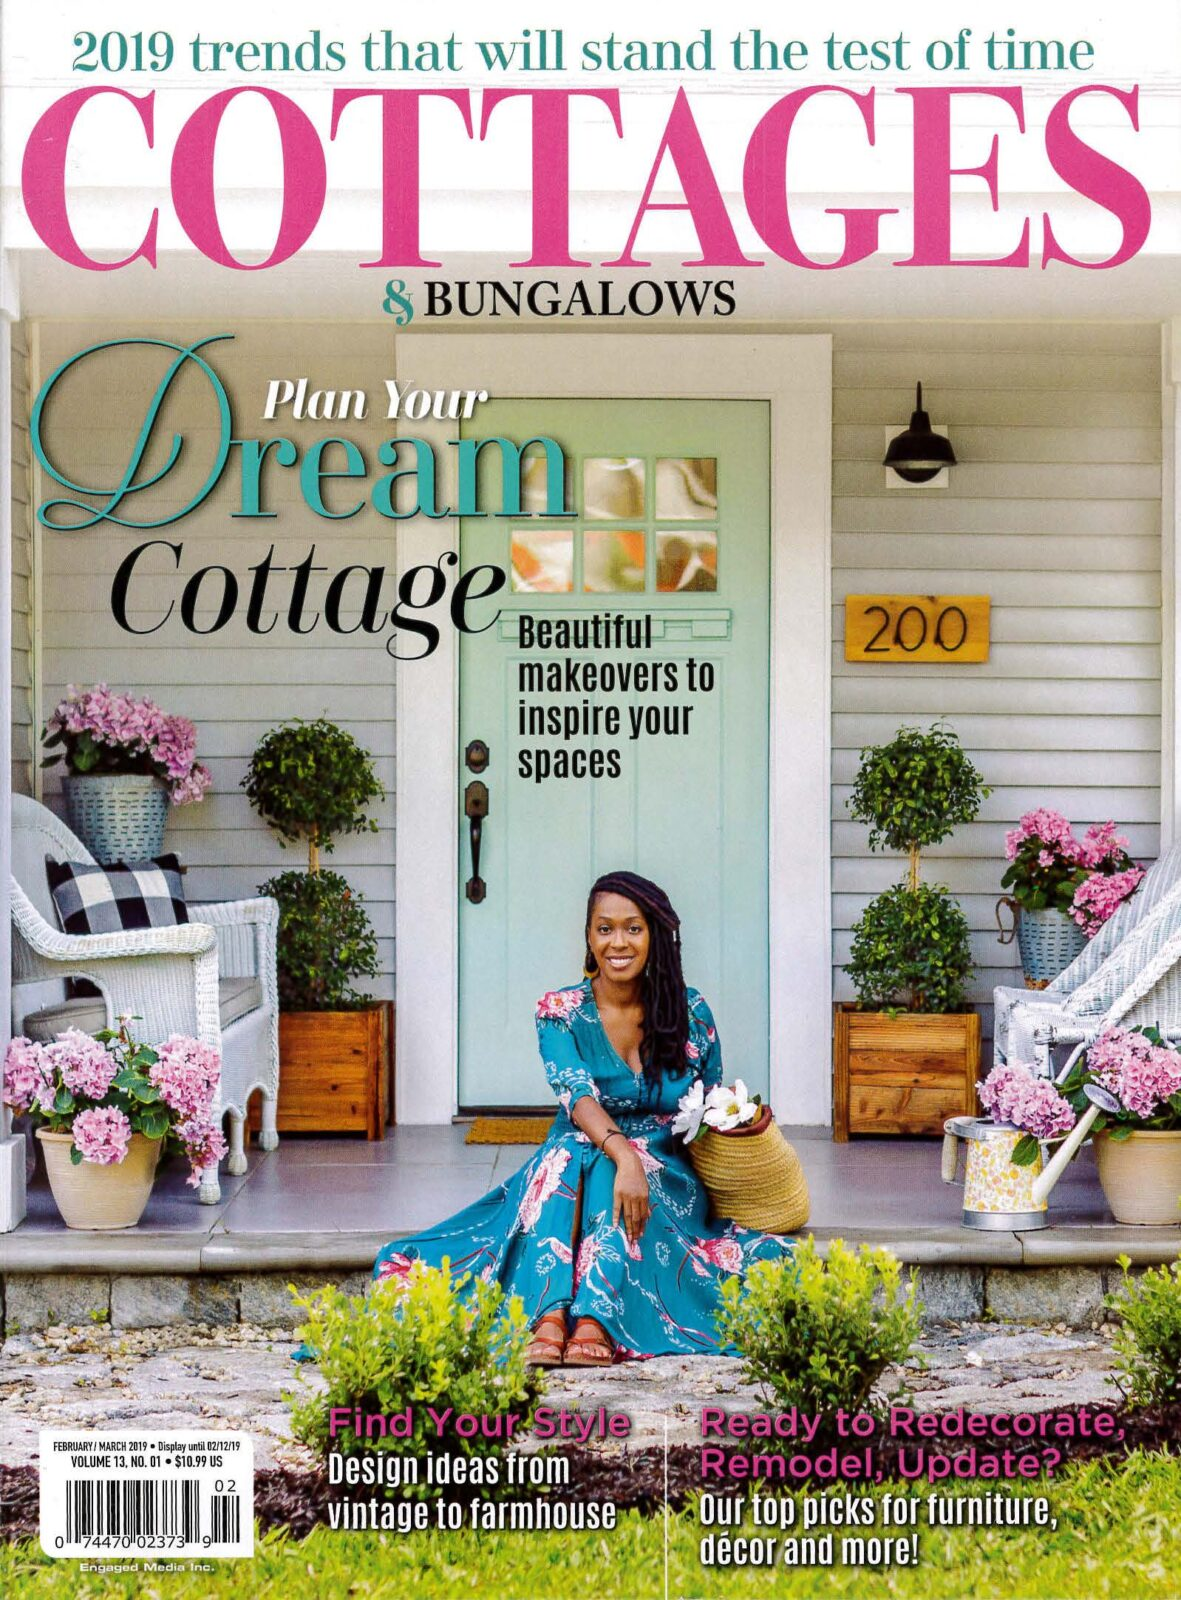 Feb/March 2019 Cover of Cottages and Bungalows